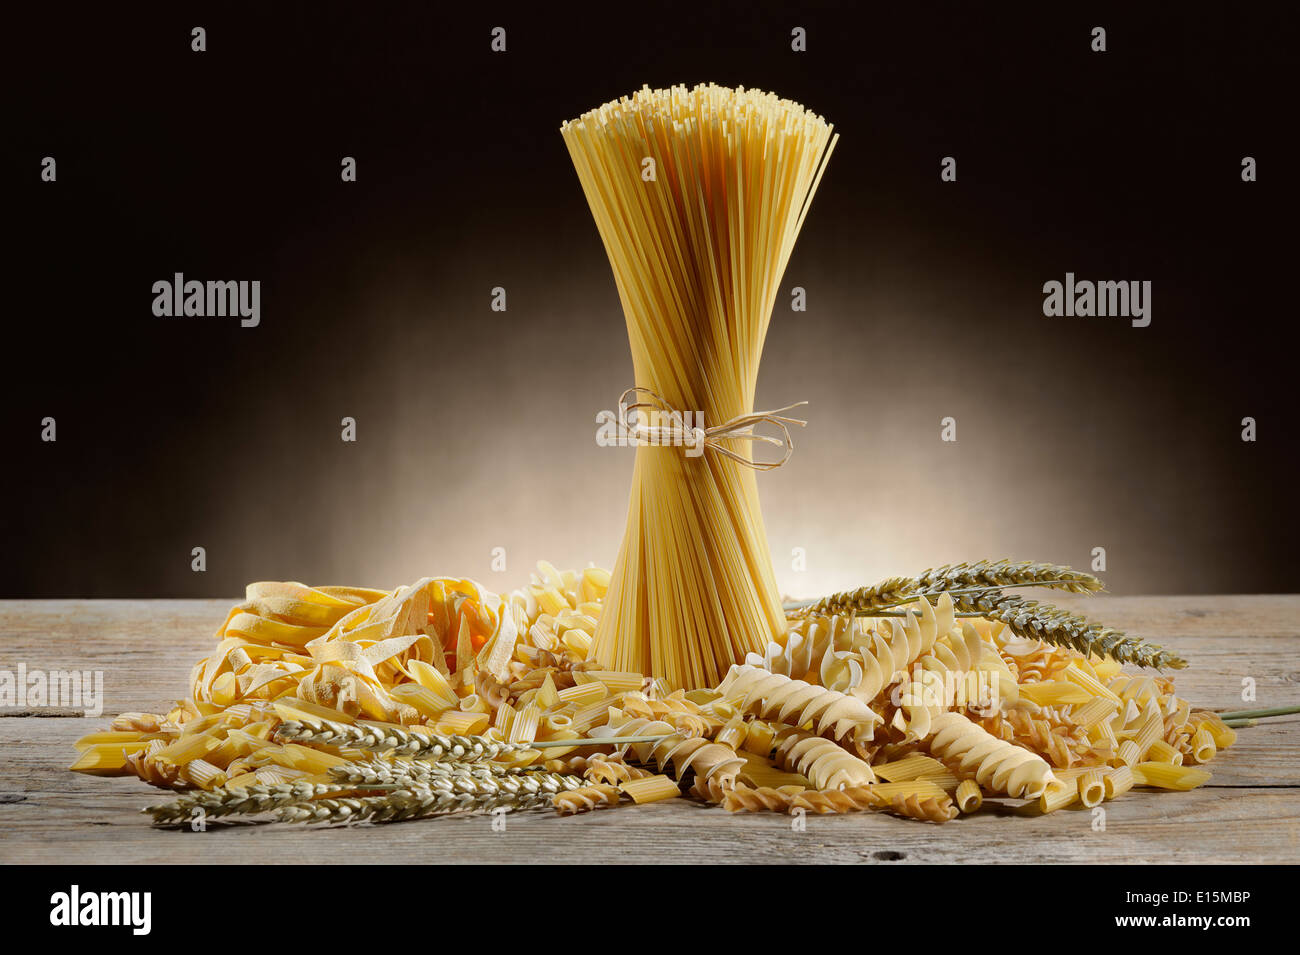 variety of uncooked pasta on wooden table with ears of wheat Stock Photo